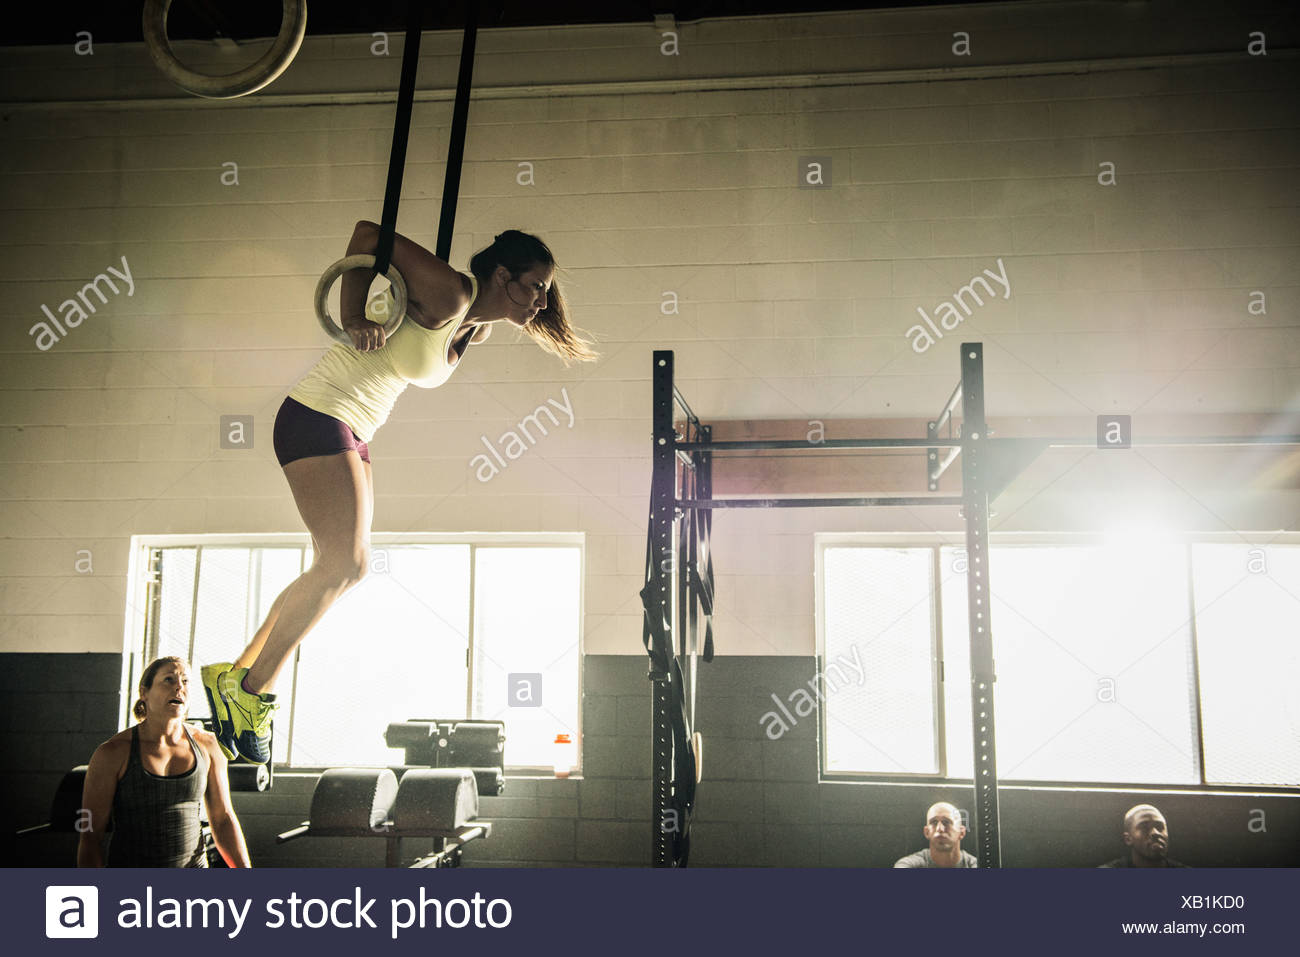 Young woman on gymnasium rings watched by trainer - Stock Image